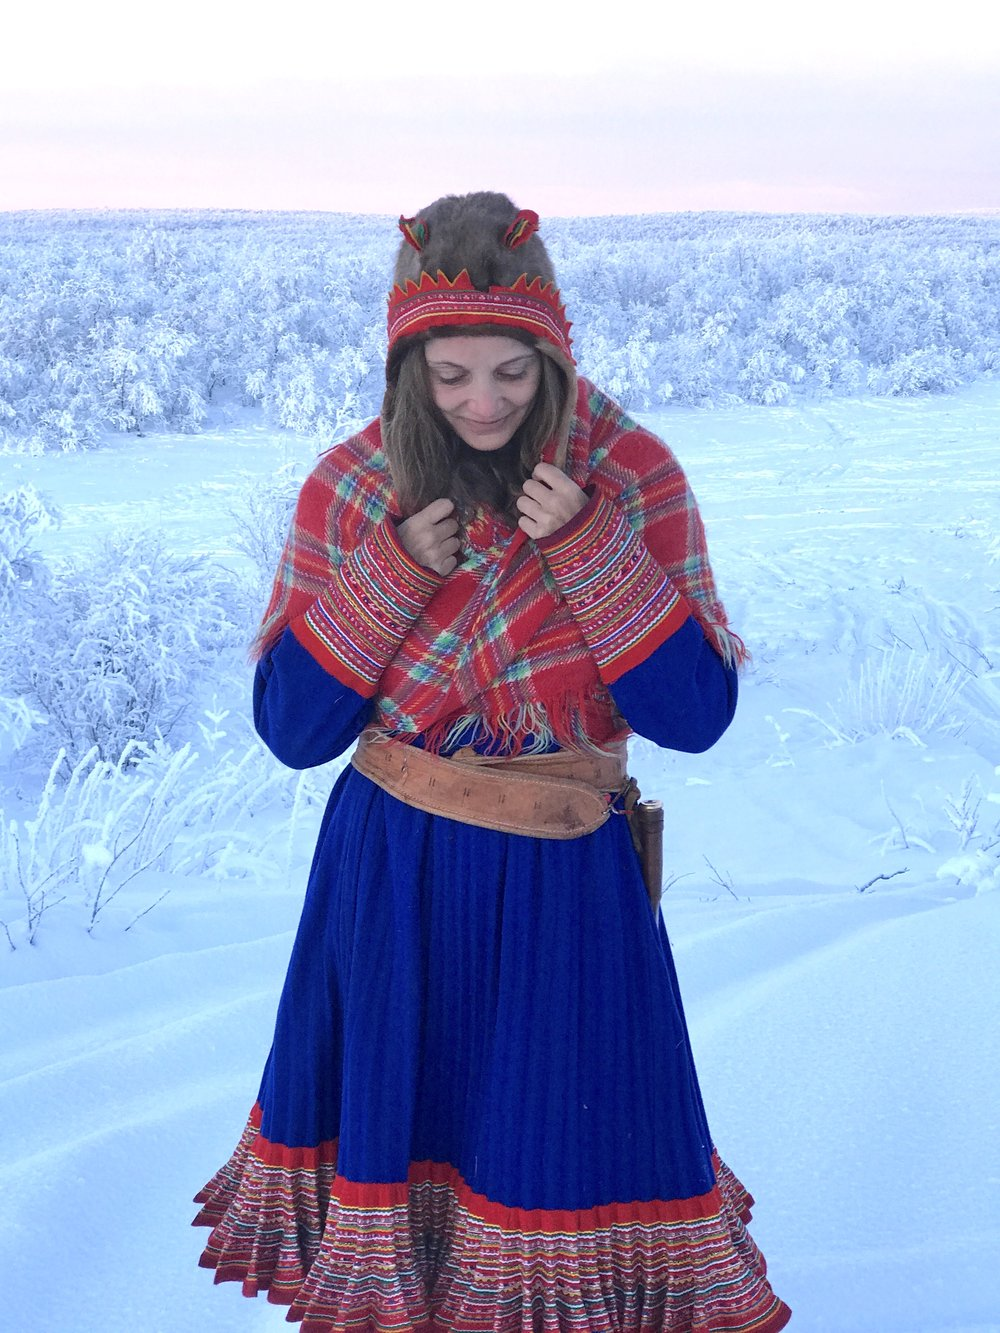 In the Arctic Tundra of Norway